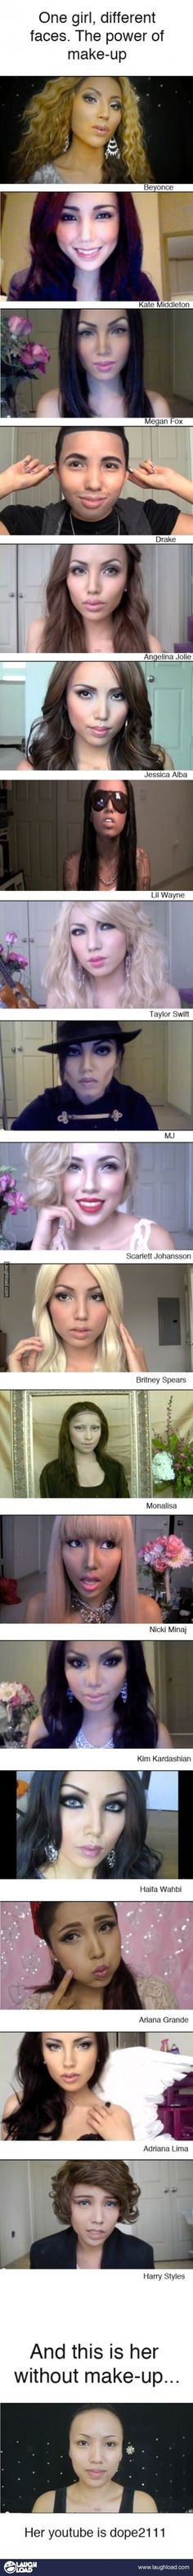 Dope2111 Known as the Human Chameleon or Mystique; using Make-up to transform herself into famous Celebrities and Characters